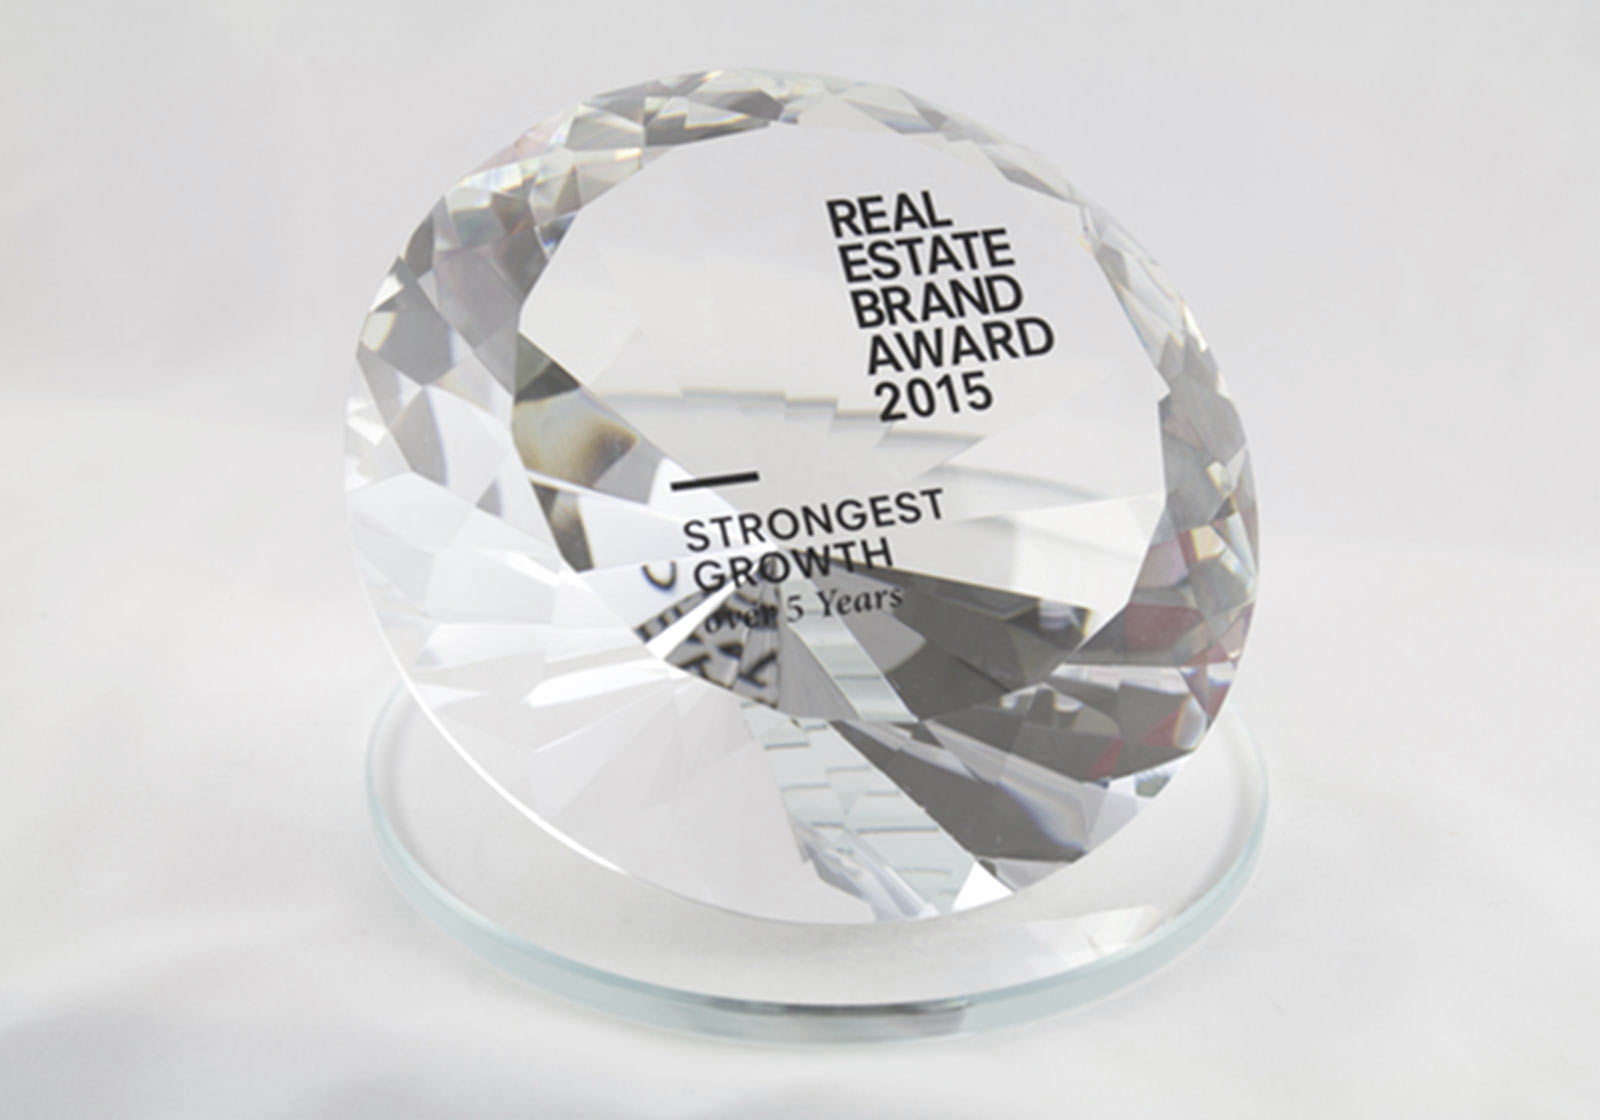 Real Estate Brand Award 2016. Photo:European Real Estate Brand Institute